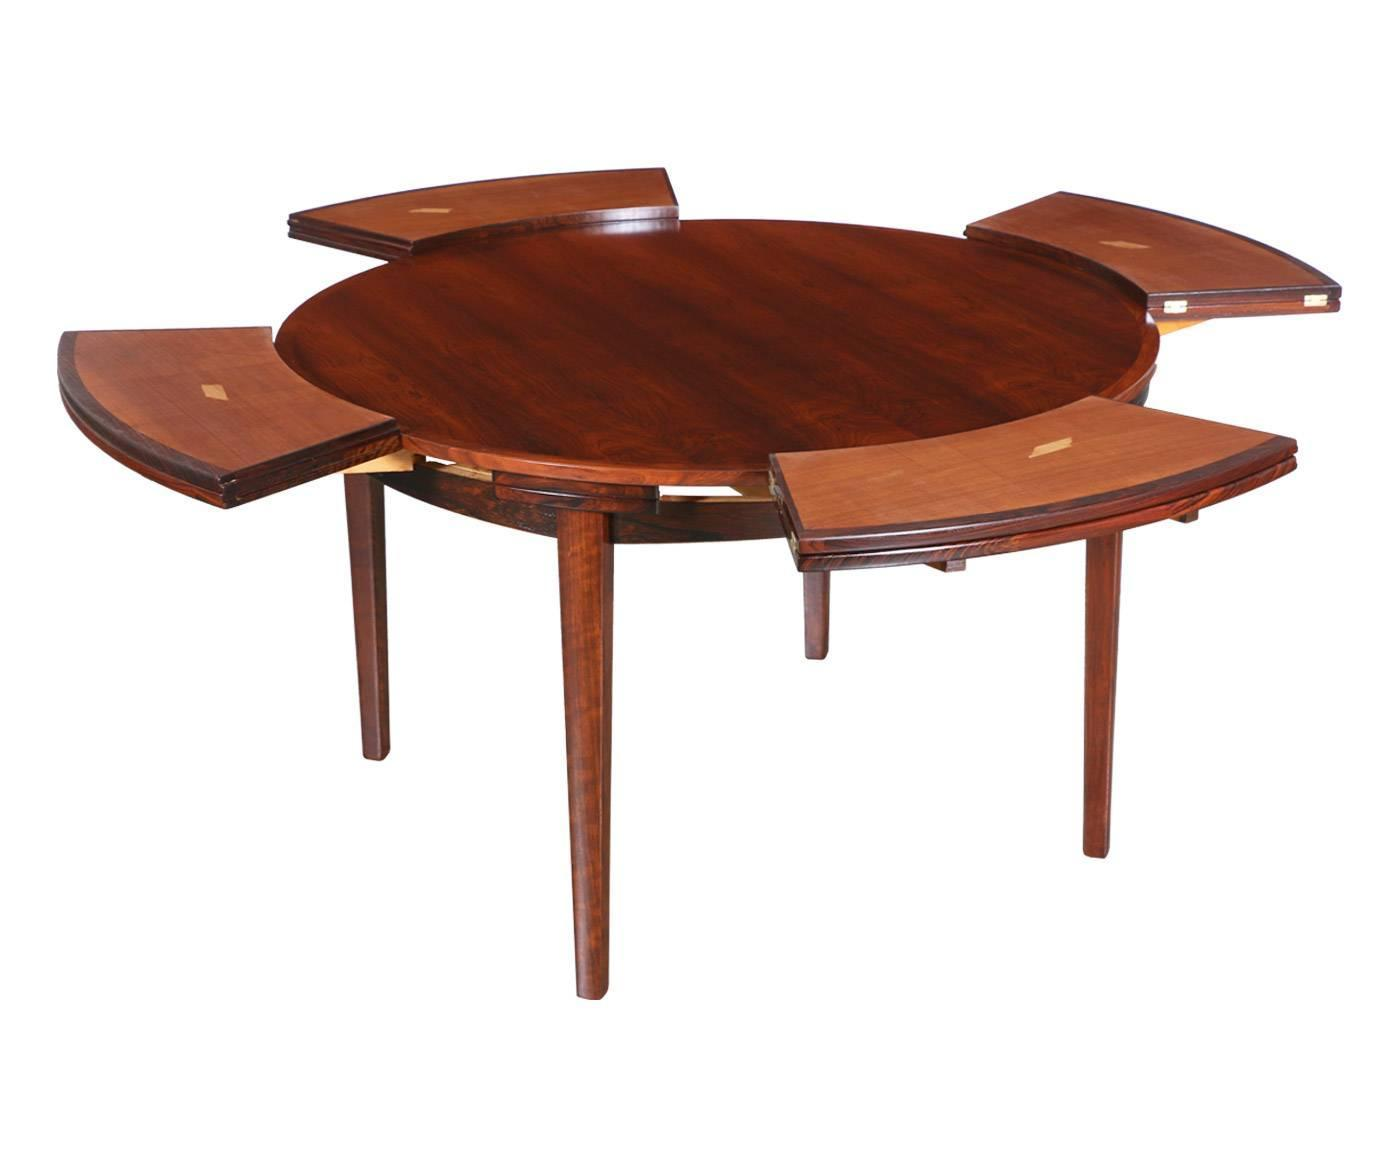 Danish modern flip flap rosewood dining table by dyrlund for Table exit fly